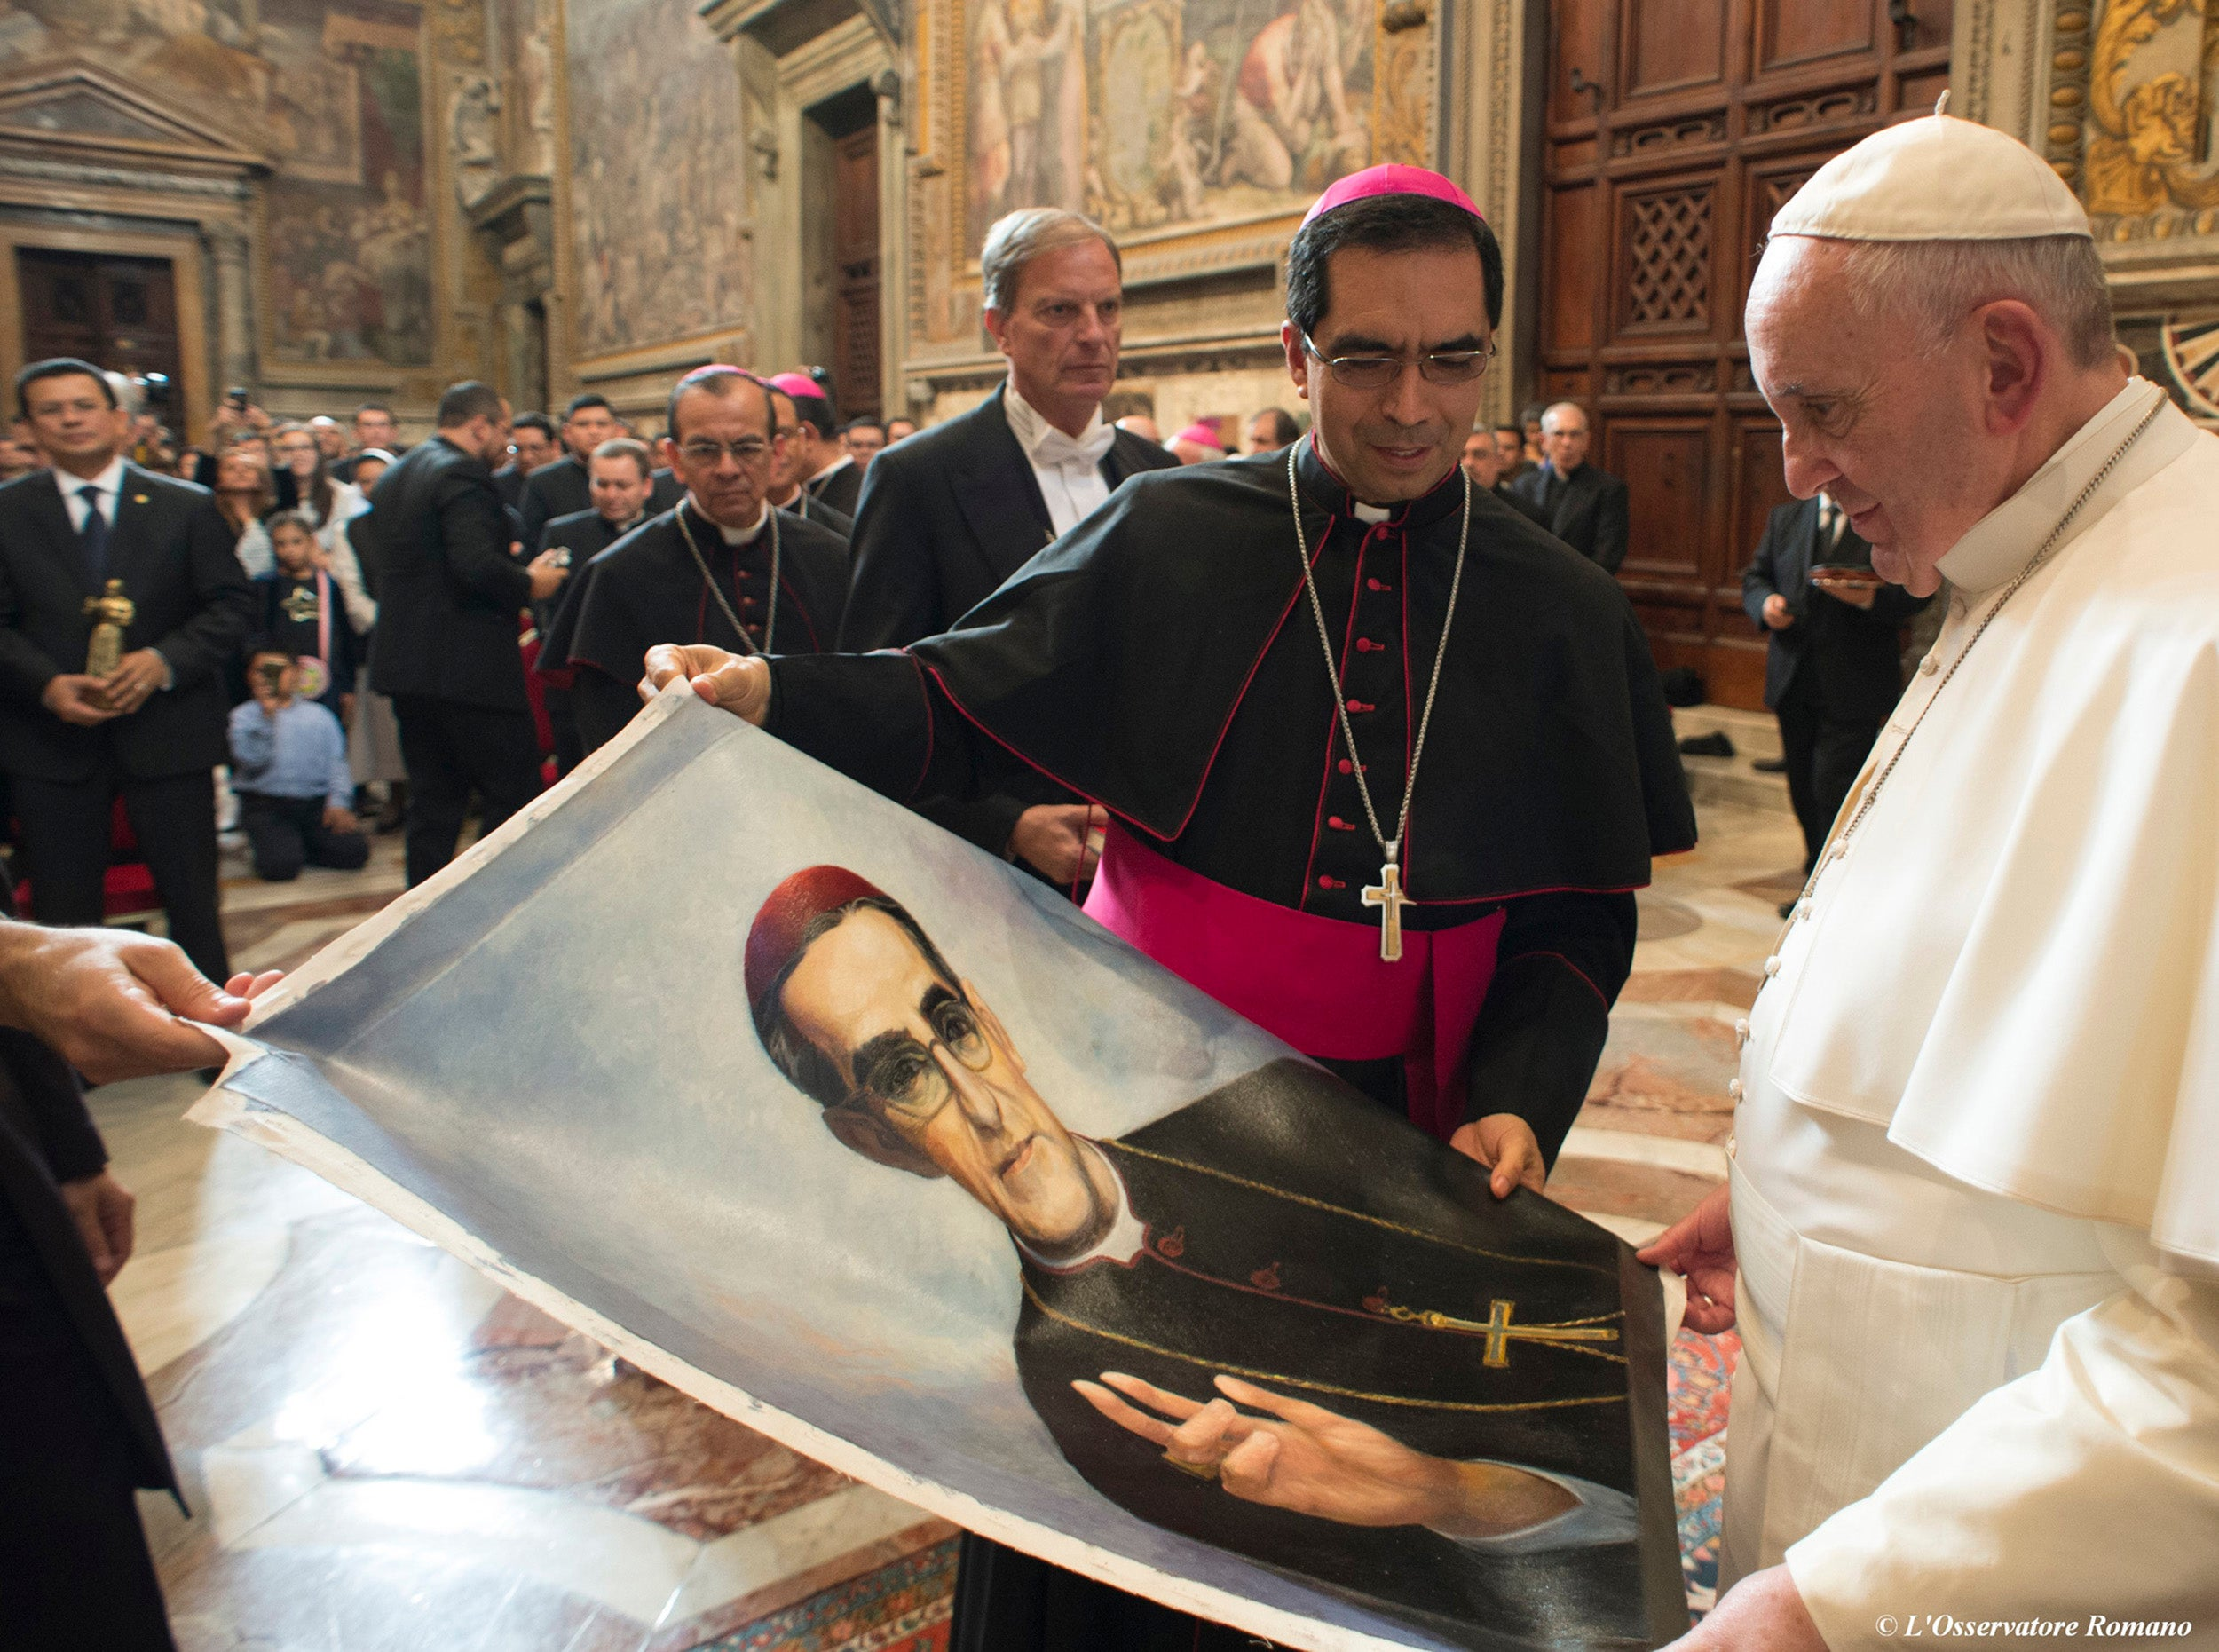 Pope Francis is presented with an image of Archbishop Oscar Romero at the Vatican in 2015.